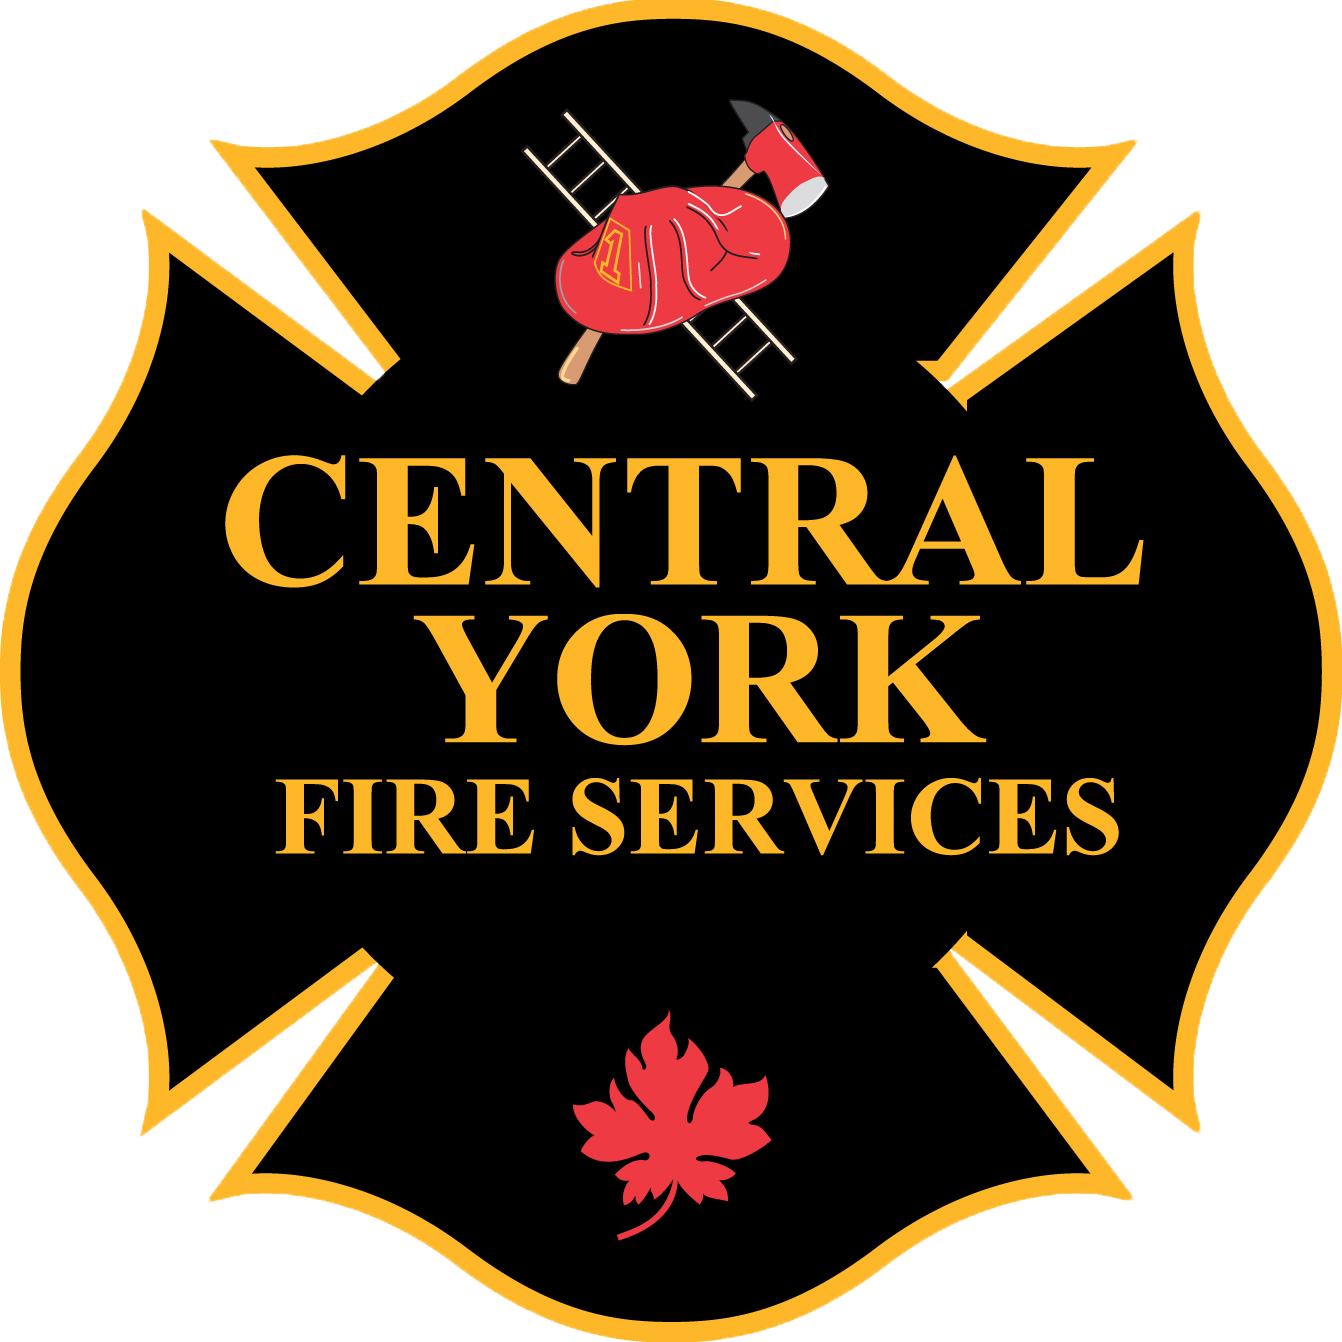 Image of Central York Fire Services Logo